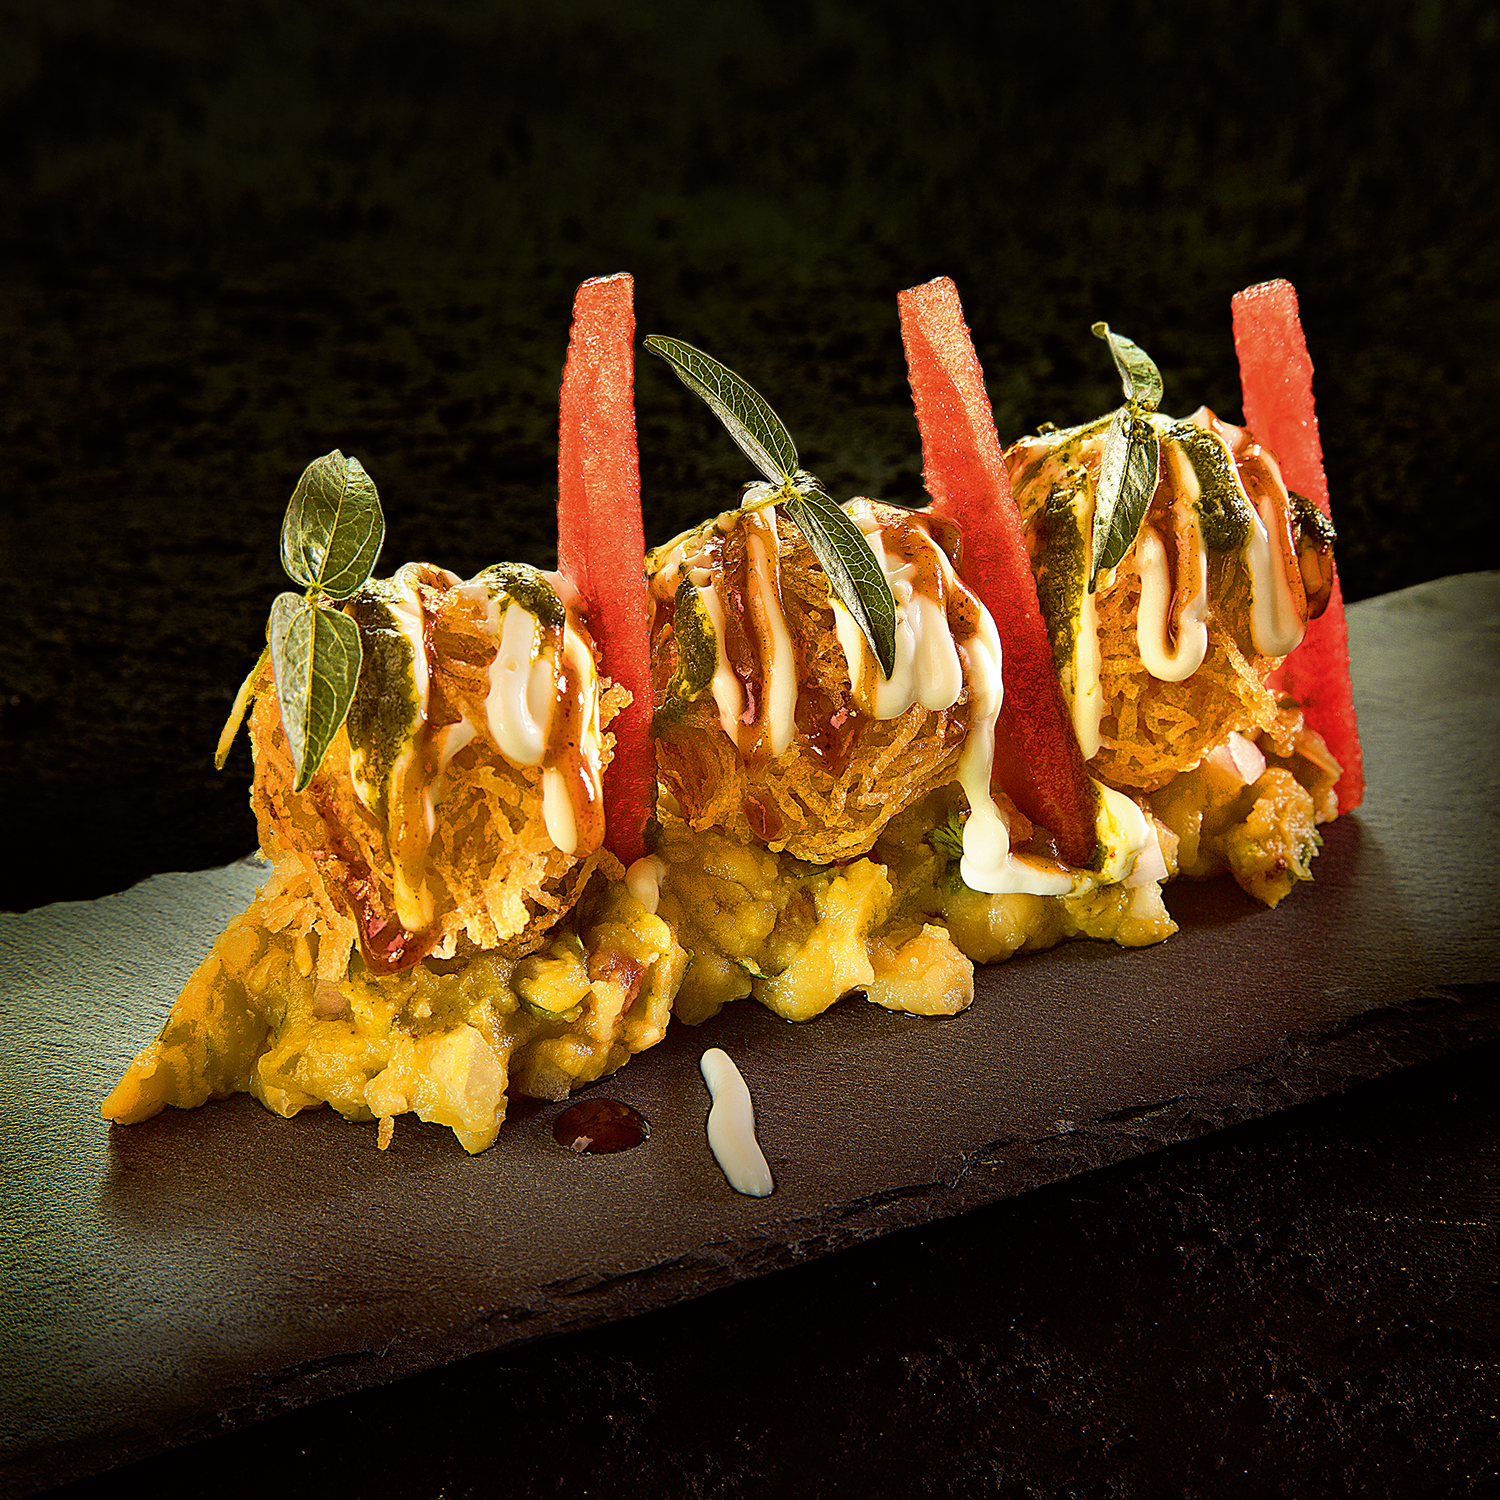 Potato Sphere Chaat, White Peas Mash, Image by Rohit Chawla for Indian Accent